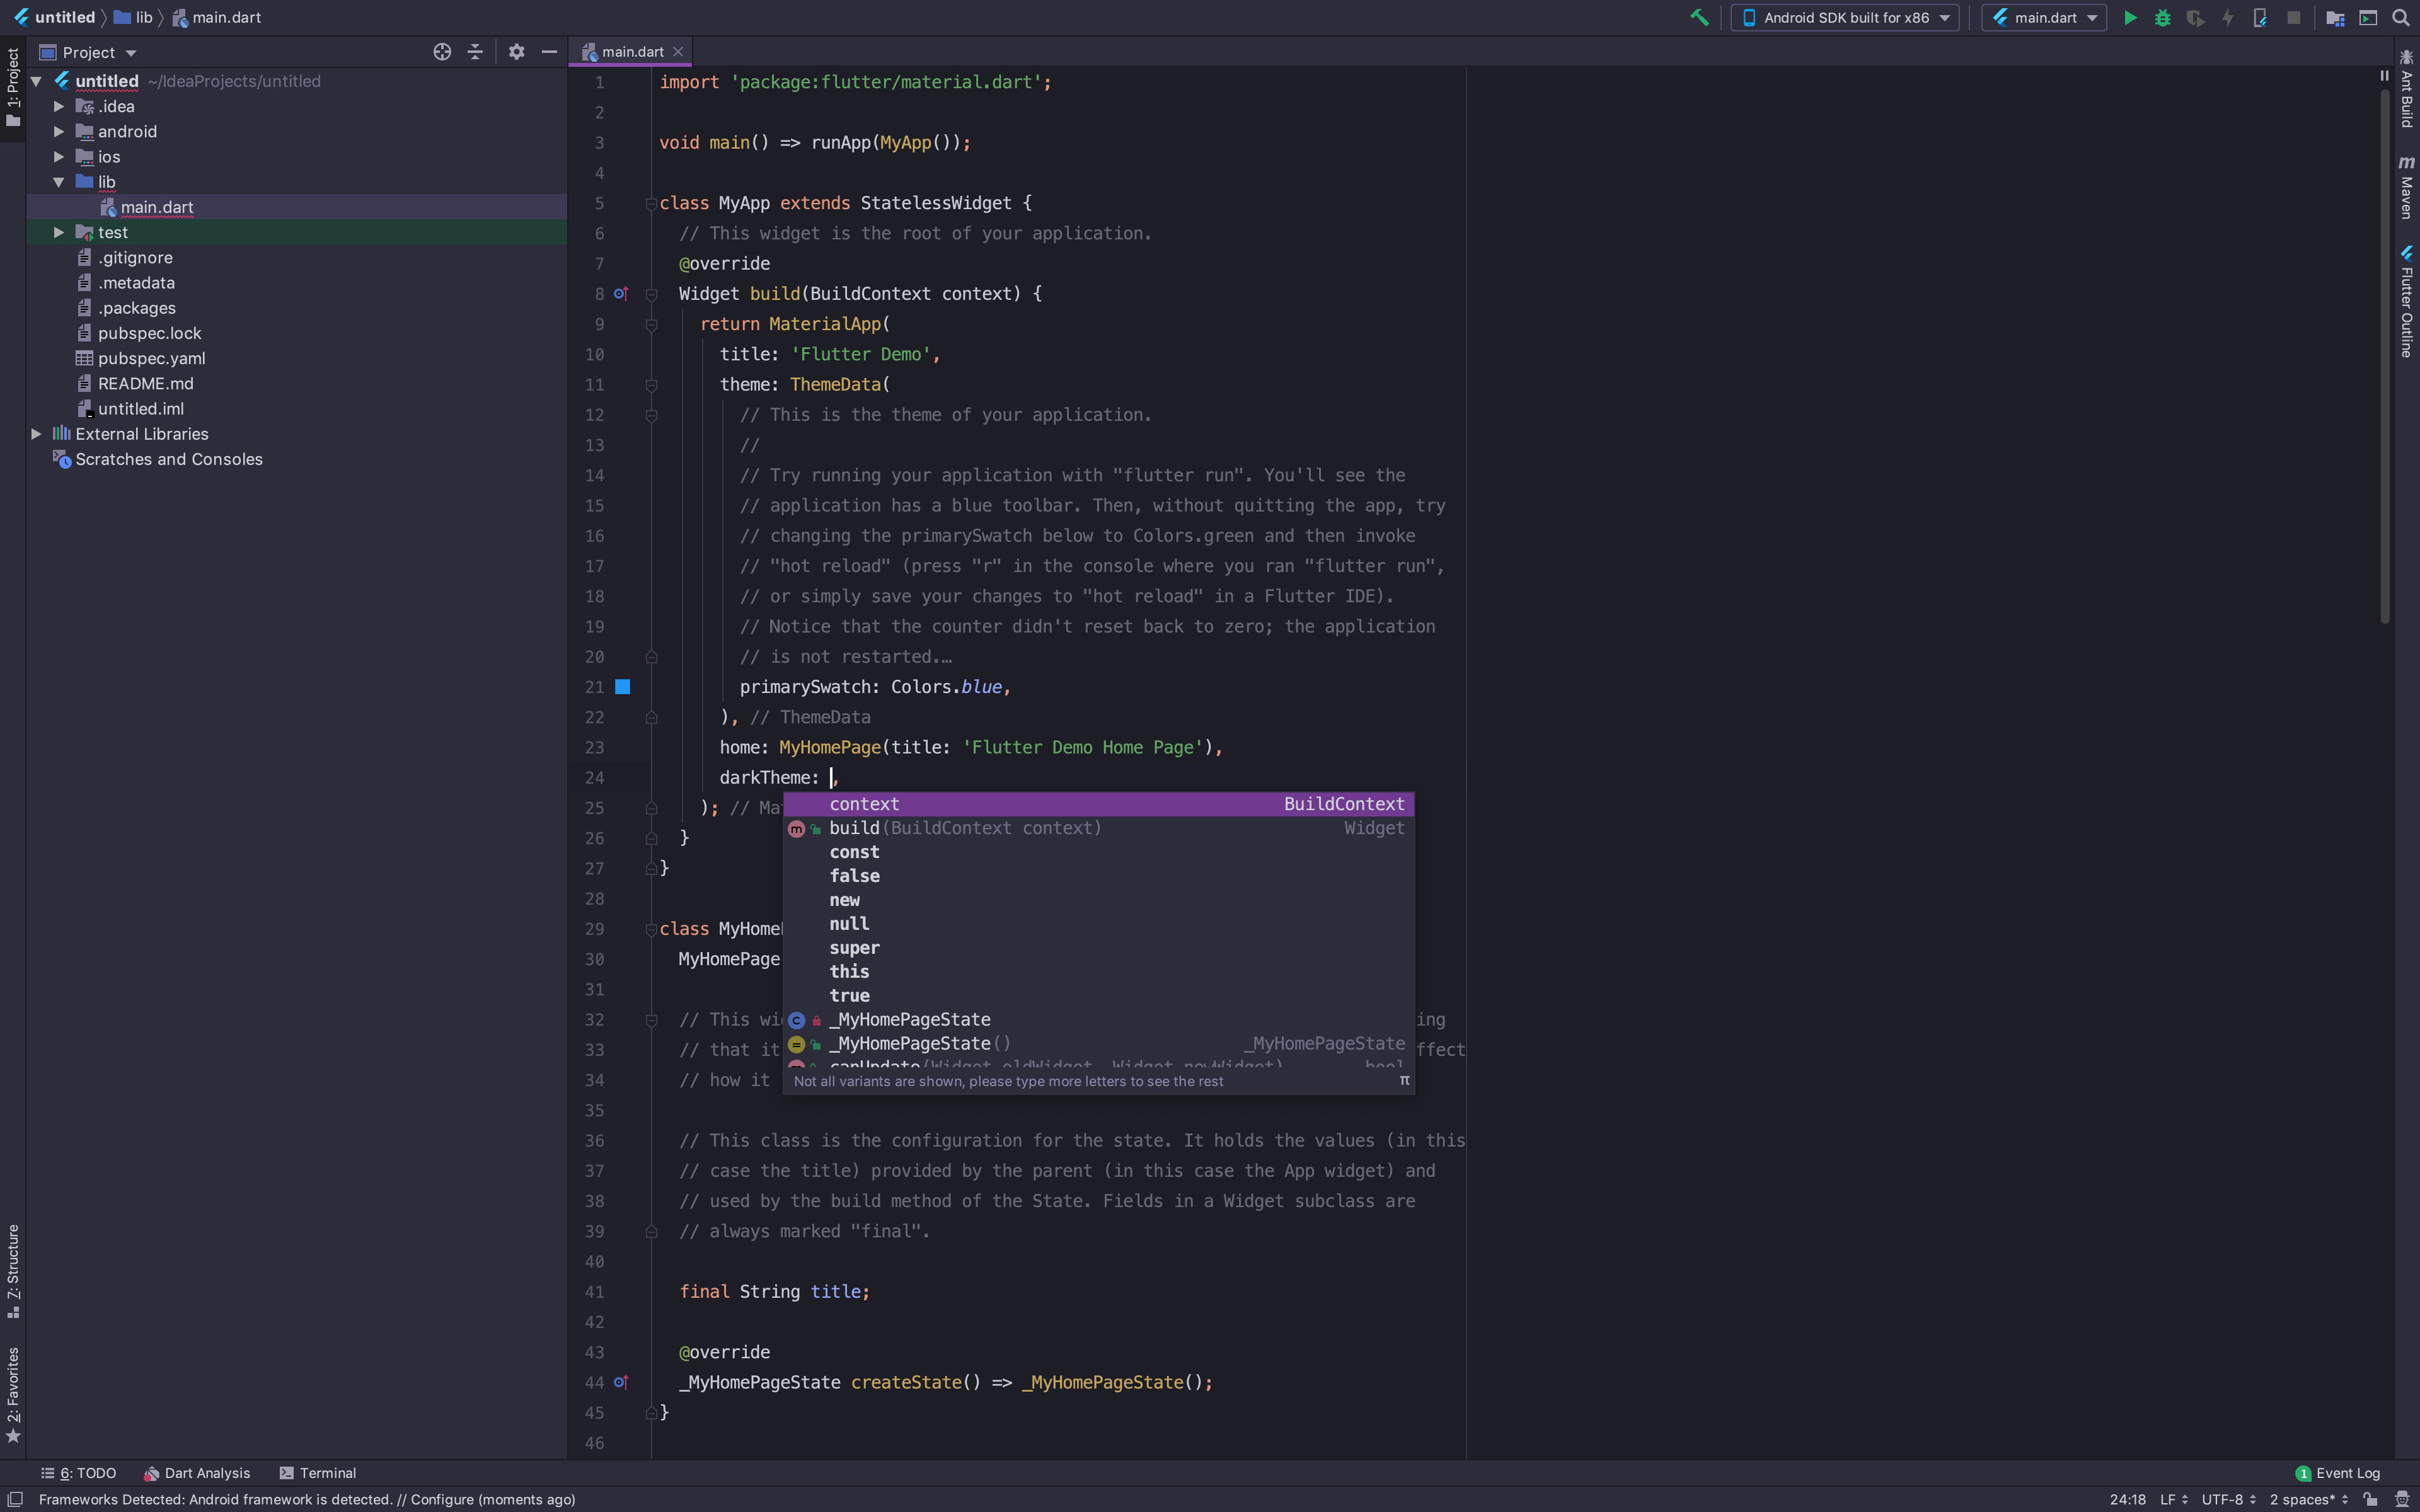 Intellij 2019, Intellisense is not working as expected